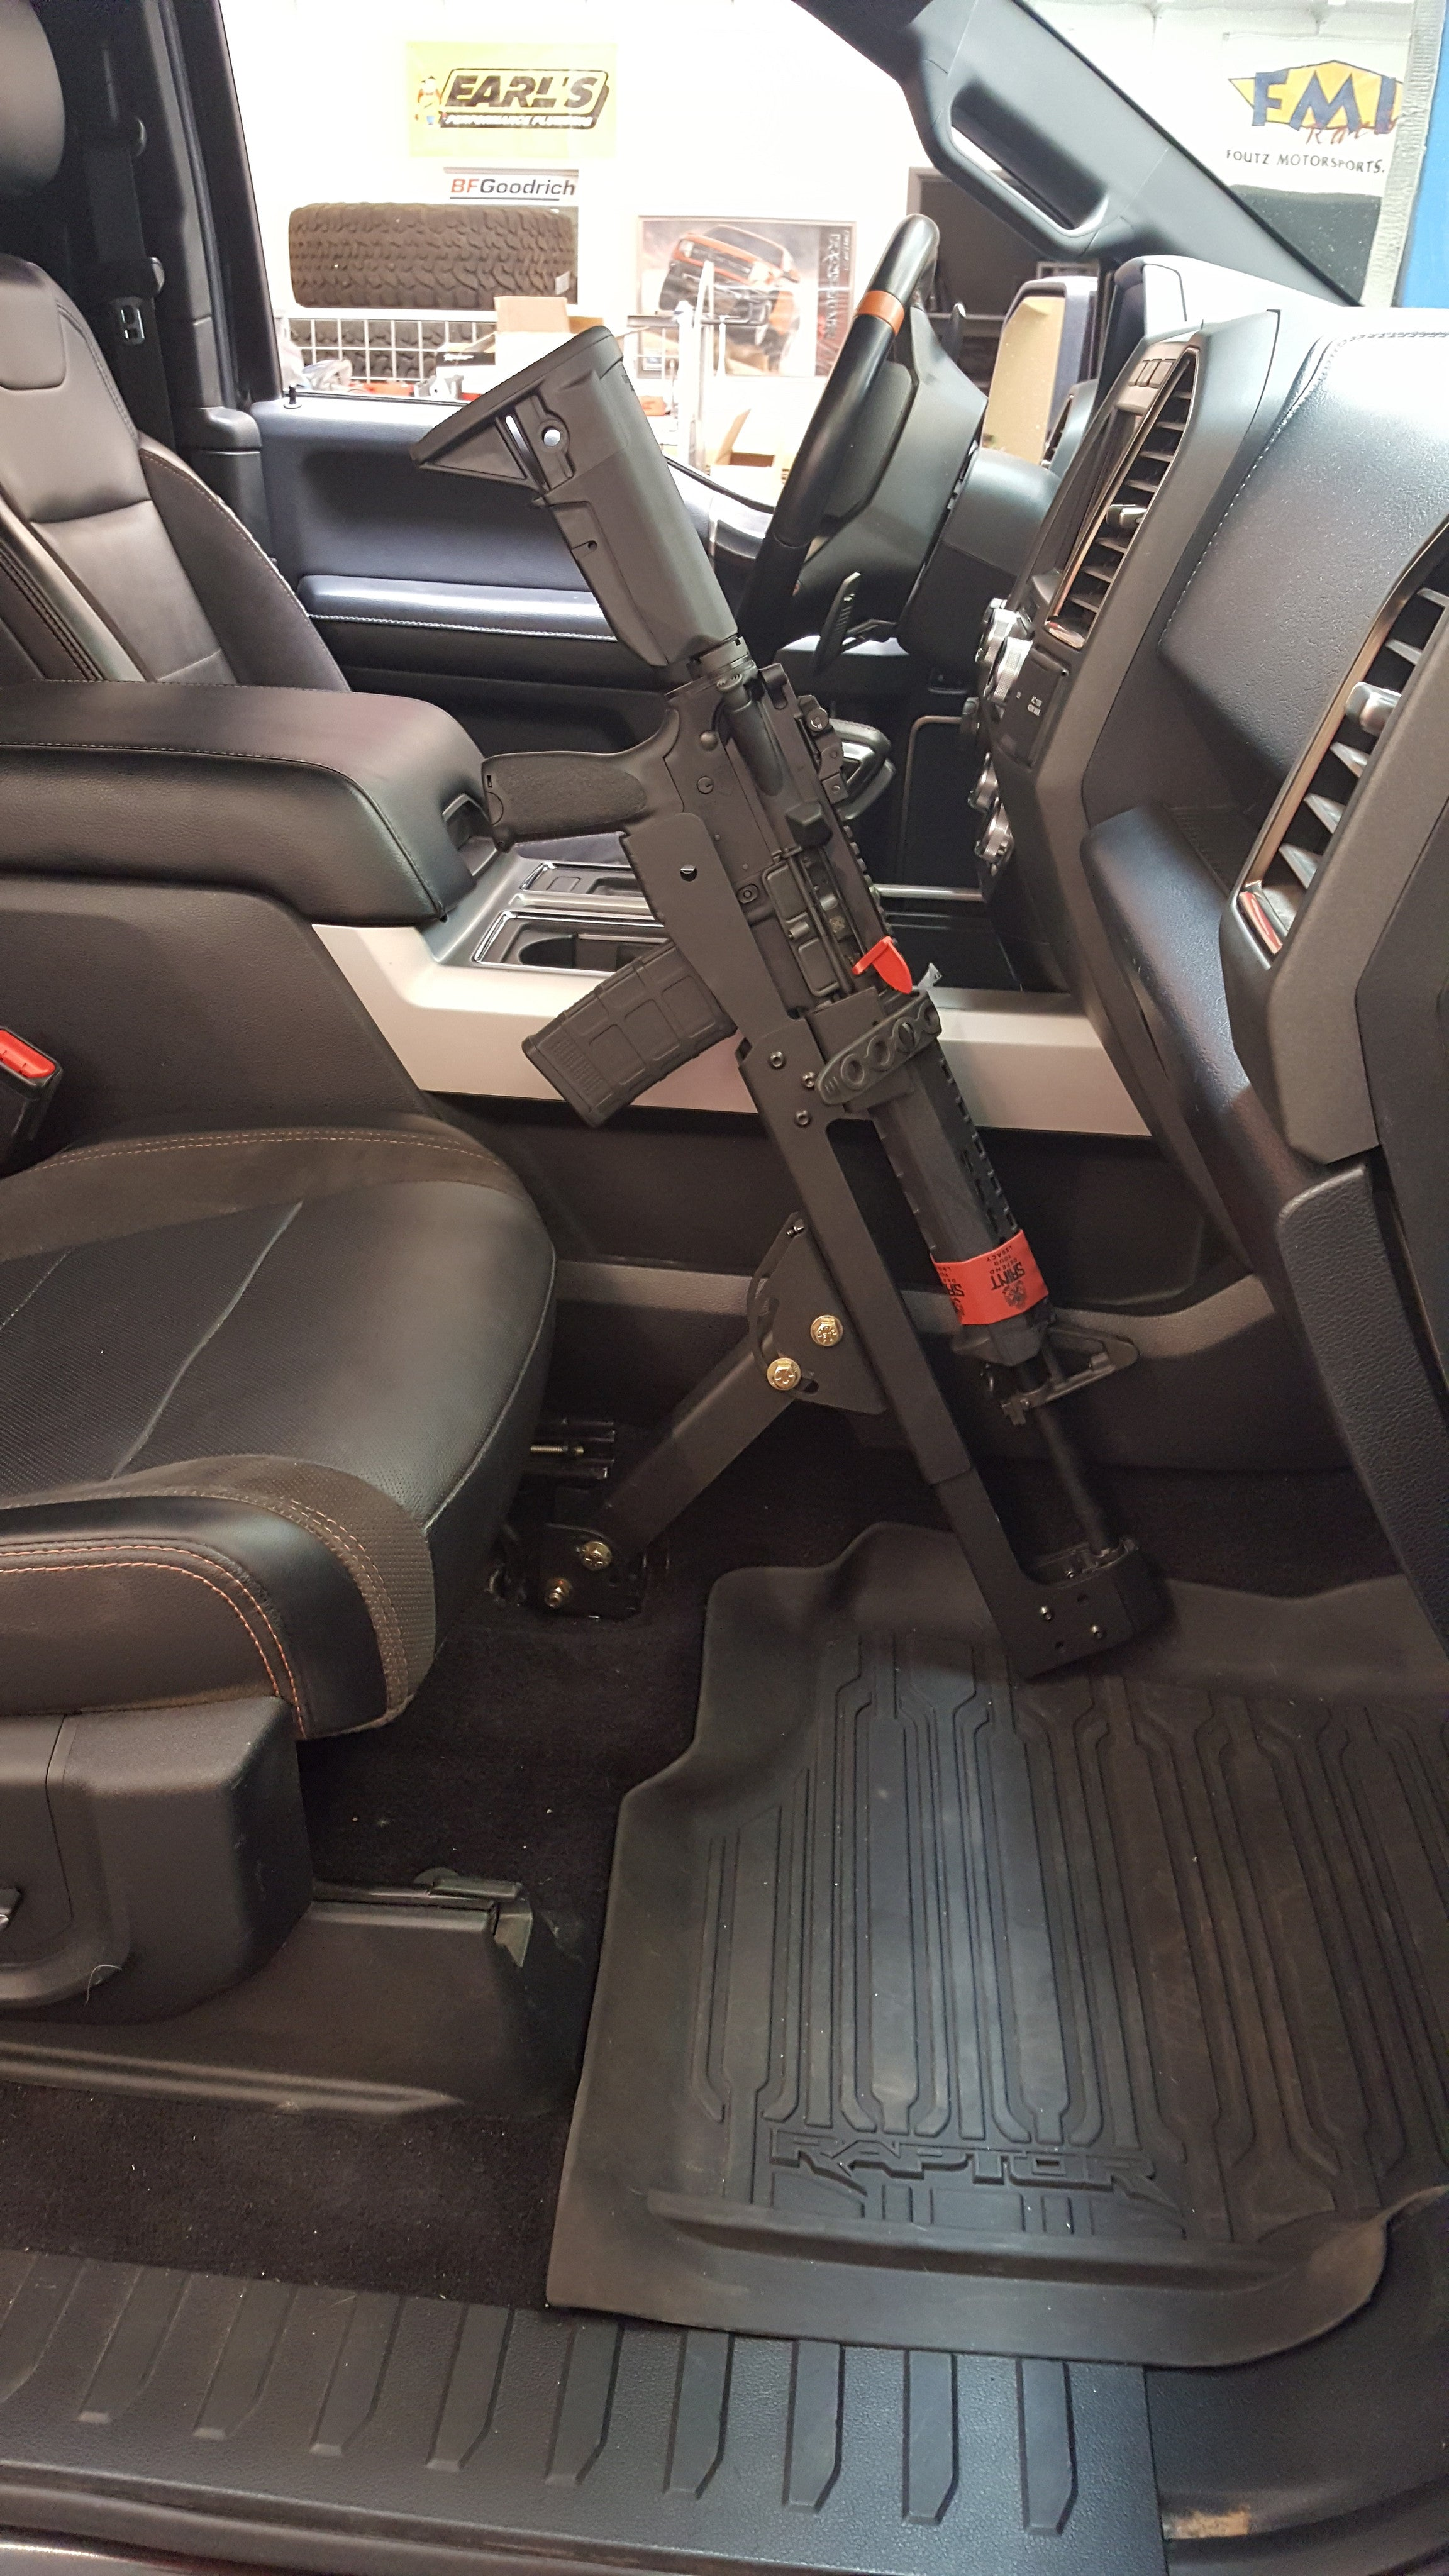 Ford F150 Rack >> Ford Truck Universal Front Seat mount kit for AR Rifle carrier - GunMount